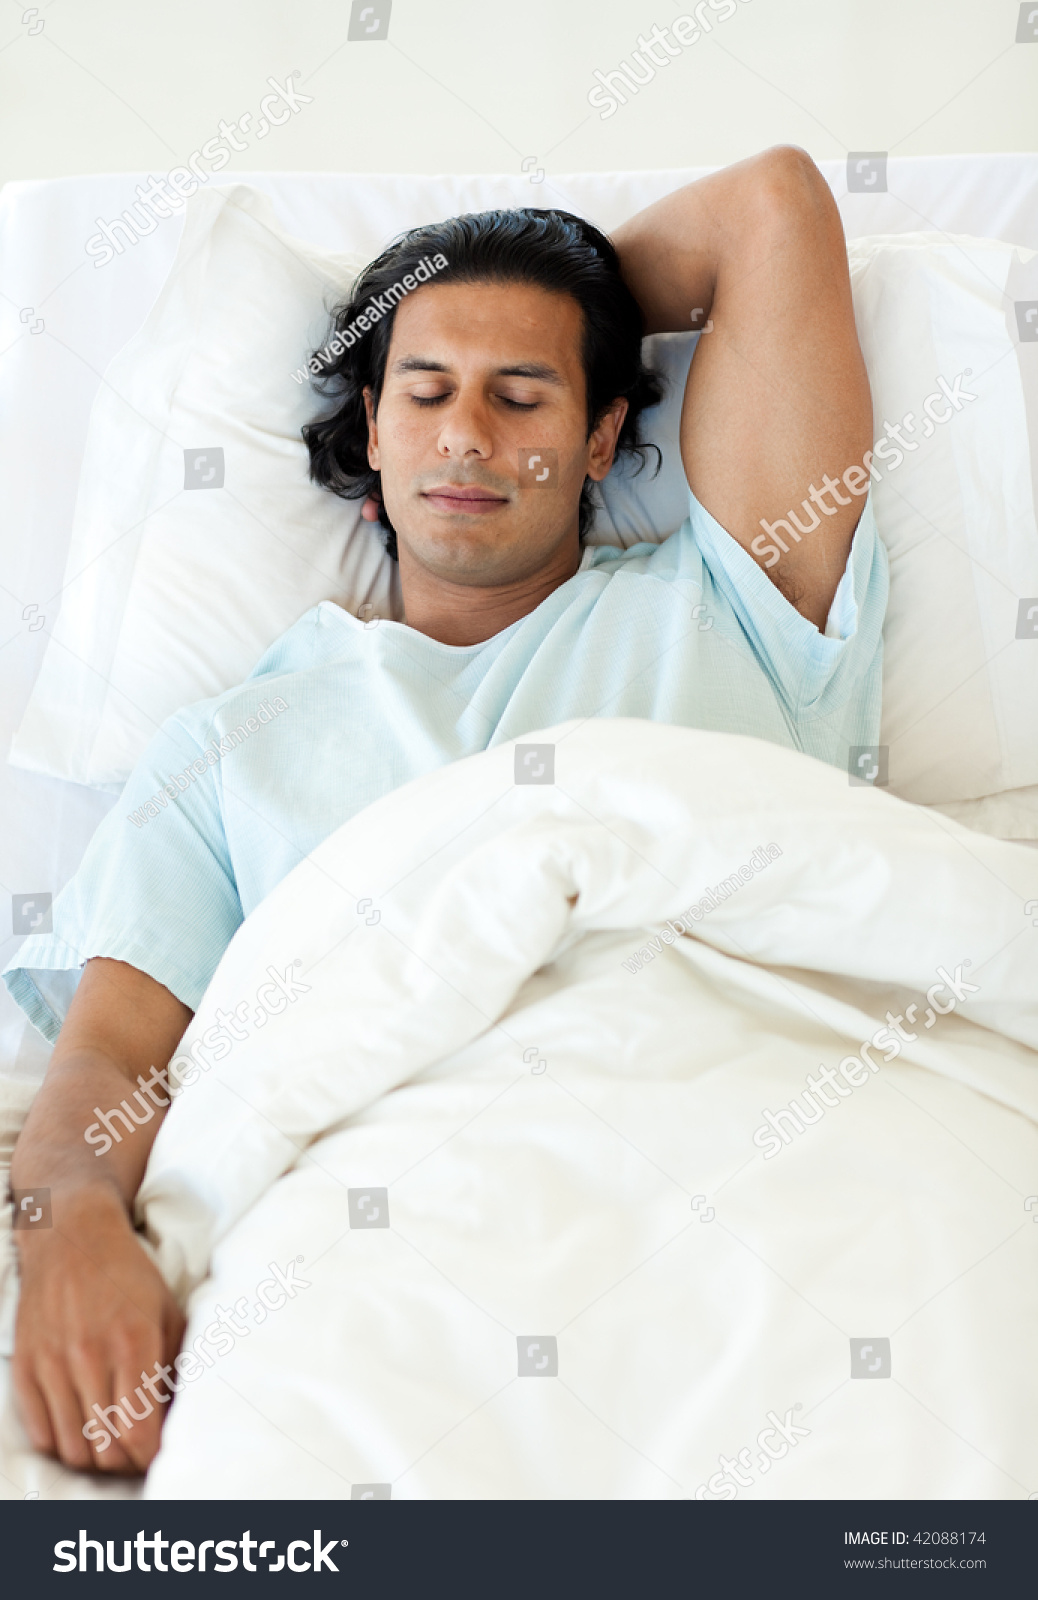 hospital bed male patient